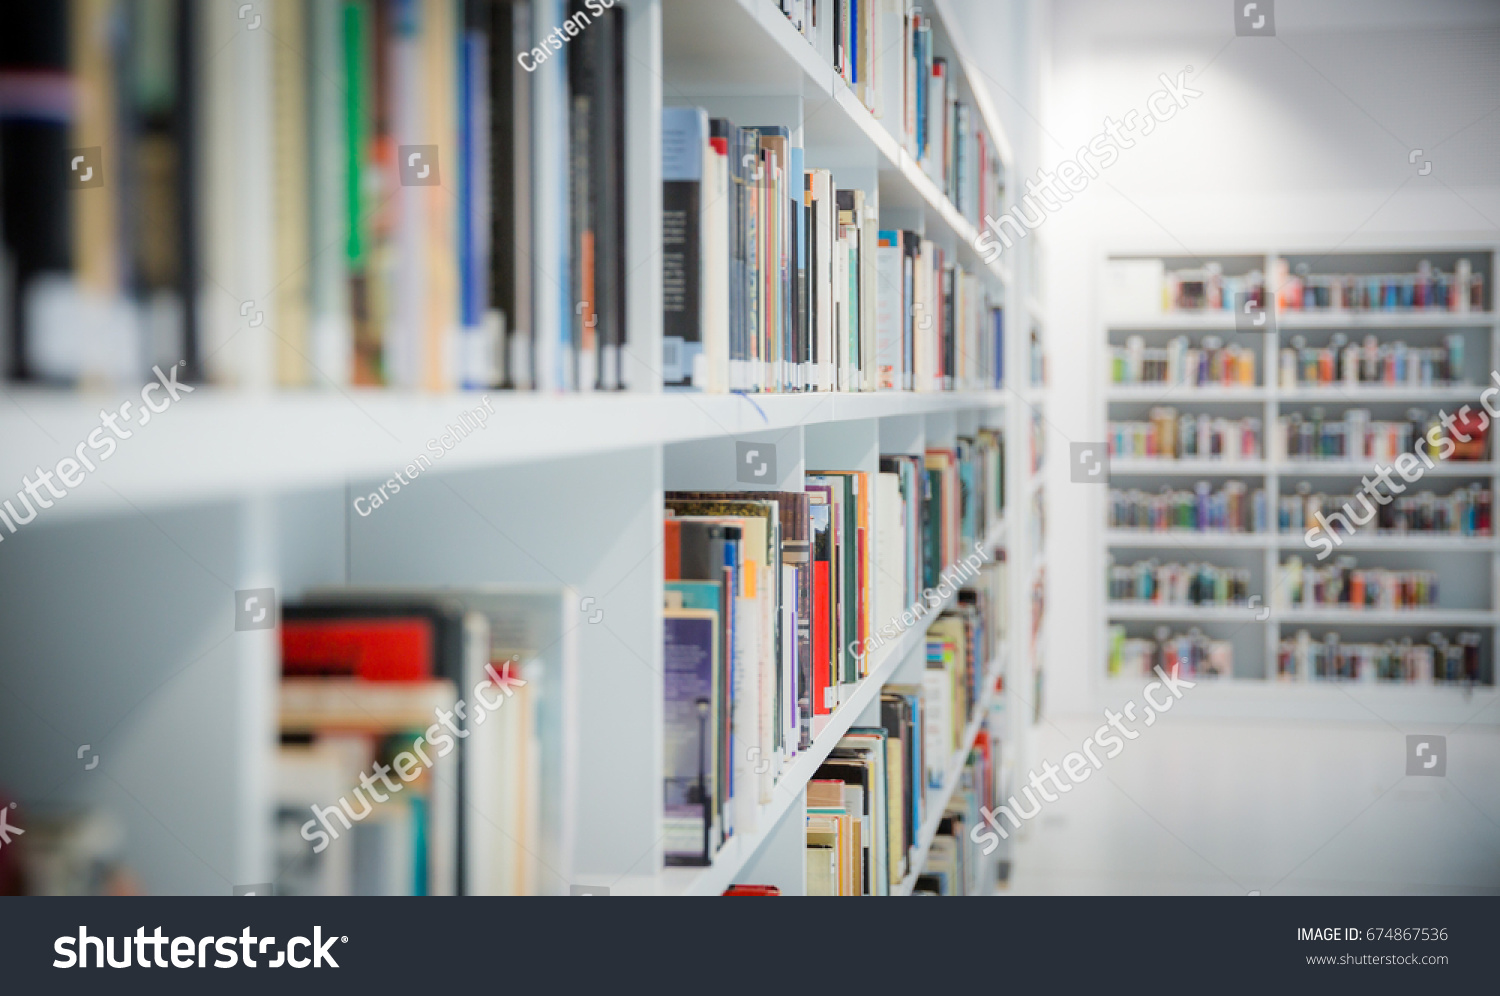 Books New Modern Library Stuttgart Germany Stock Photo (Edit ...